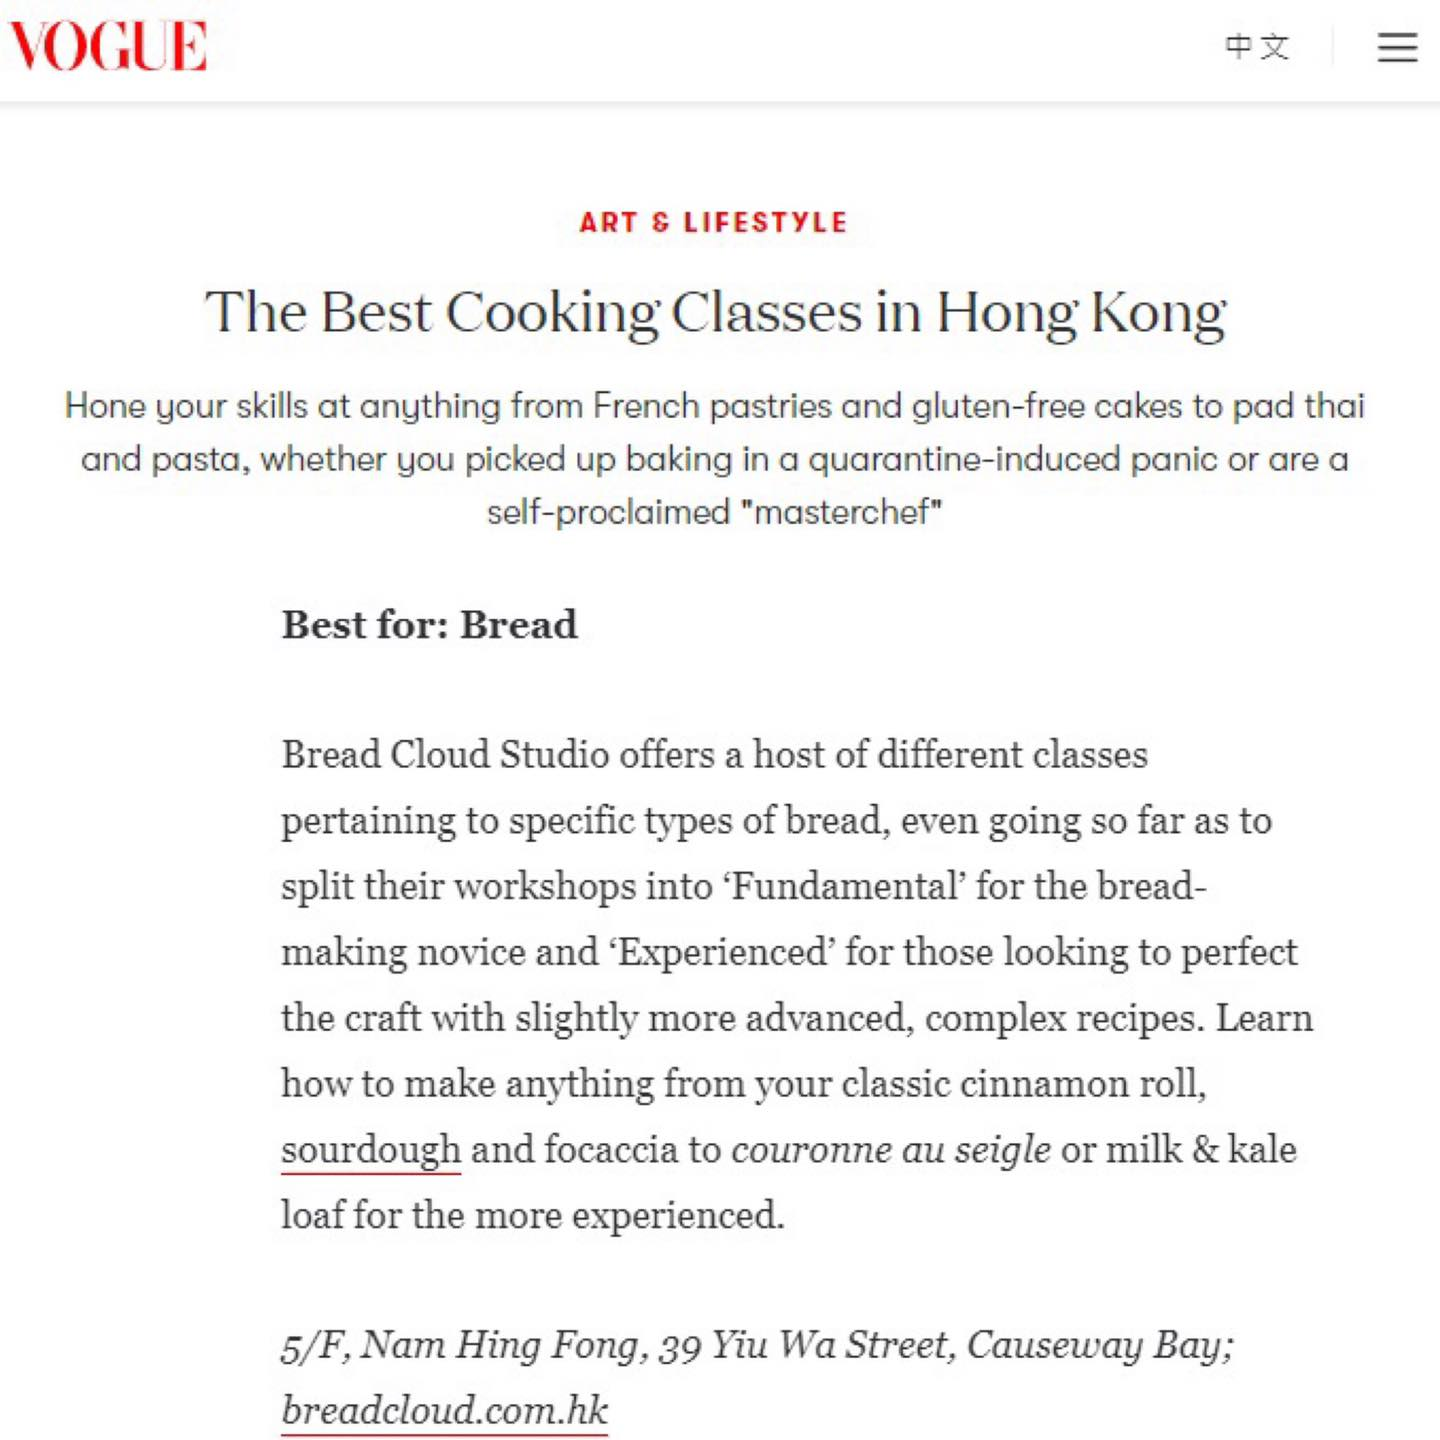 Vogue: One of the best cooking classes in Hong Kong